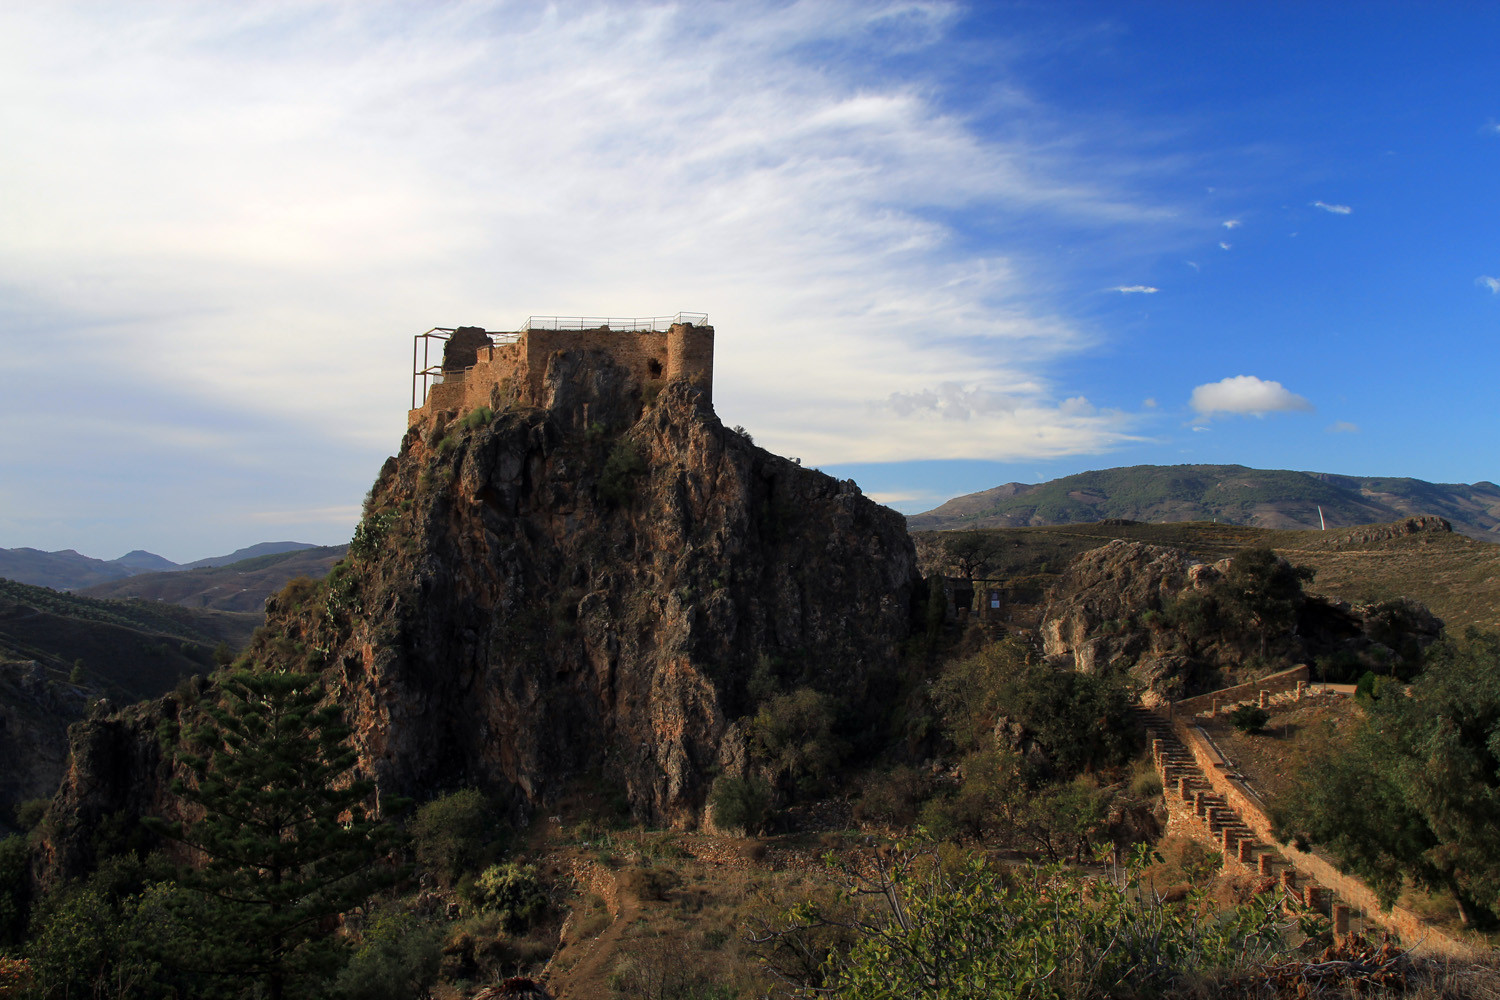 The Castle Ruins of Lanjarón